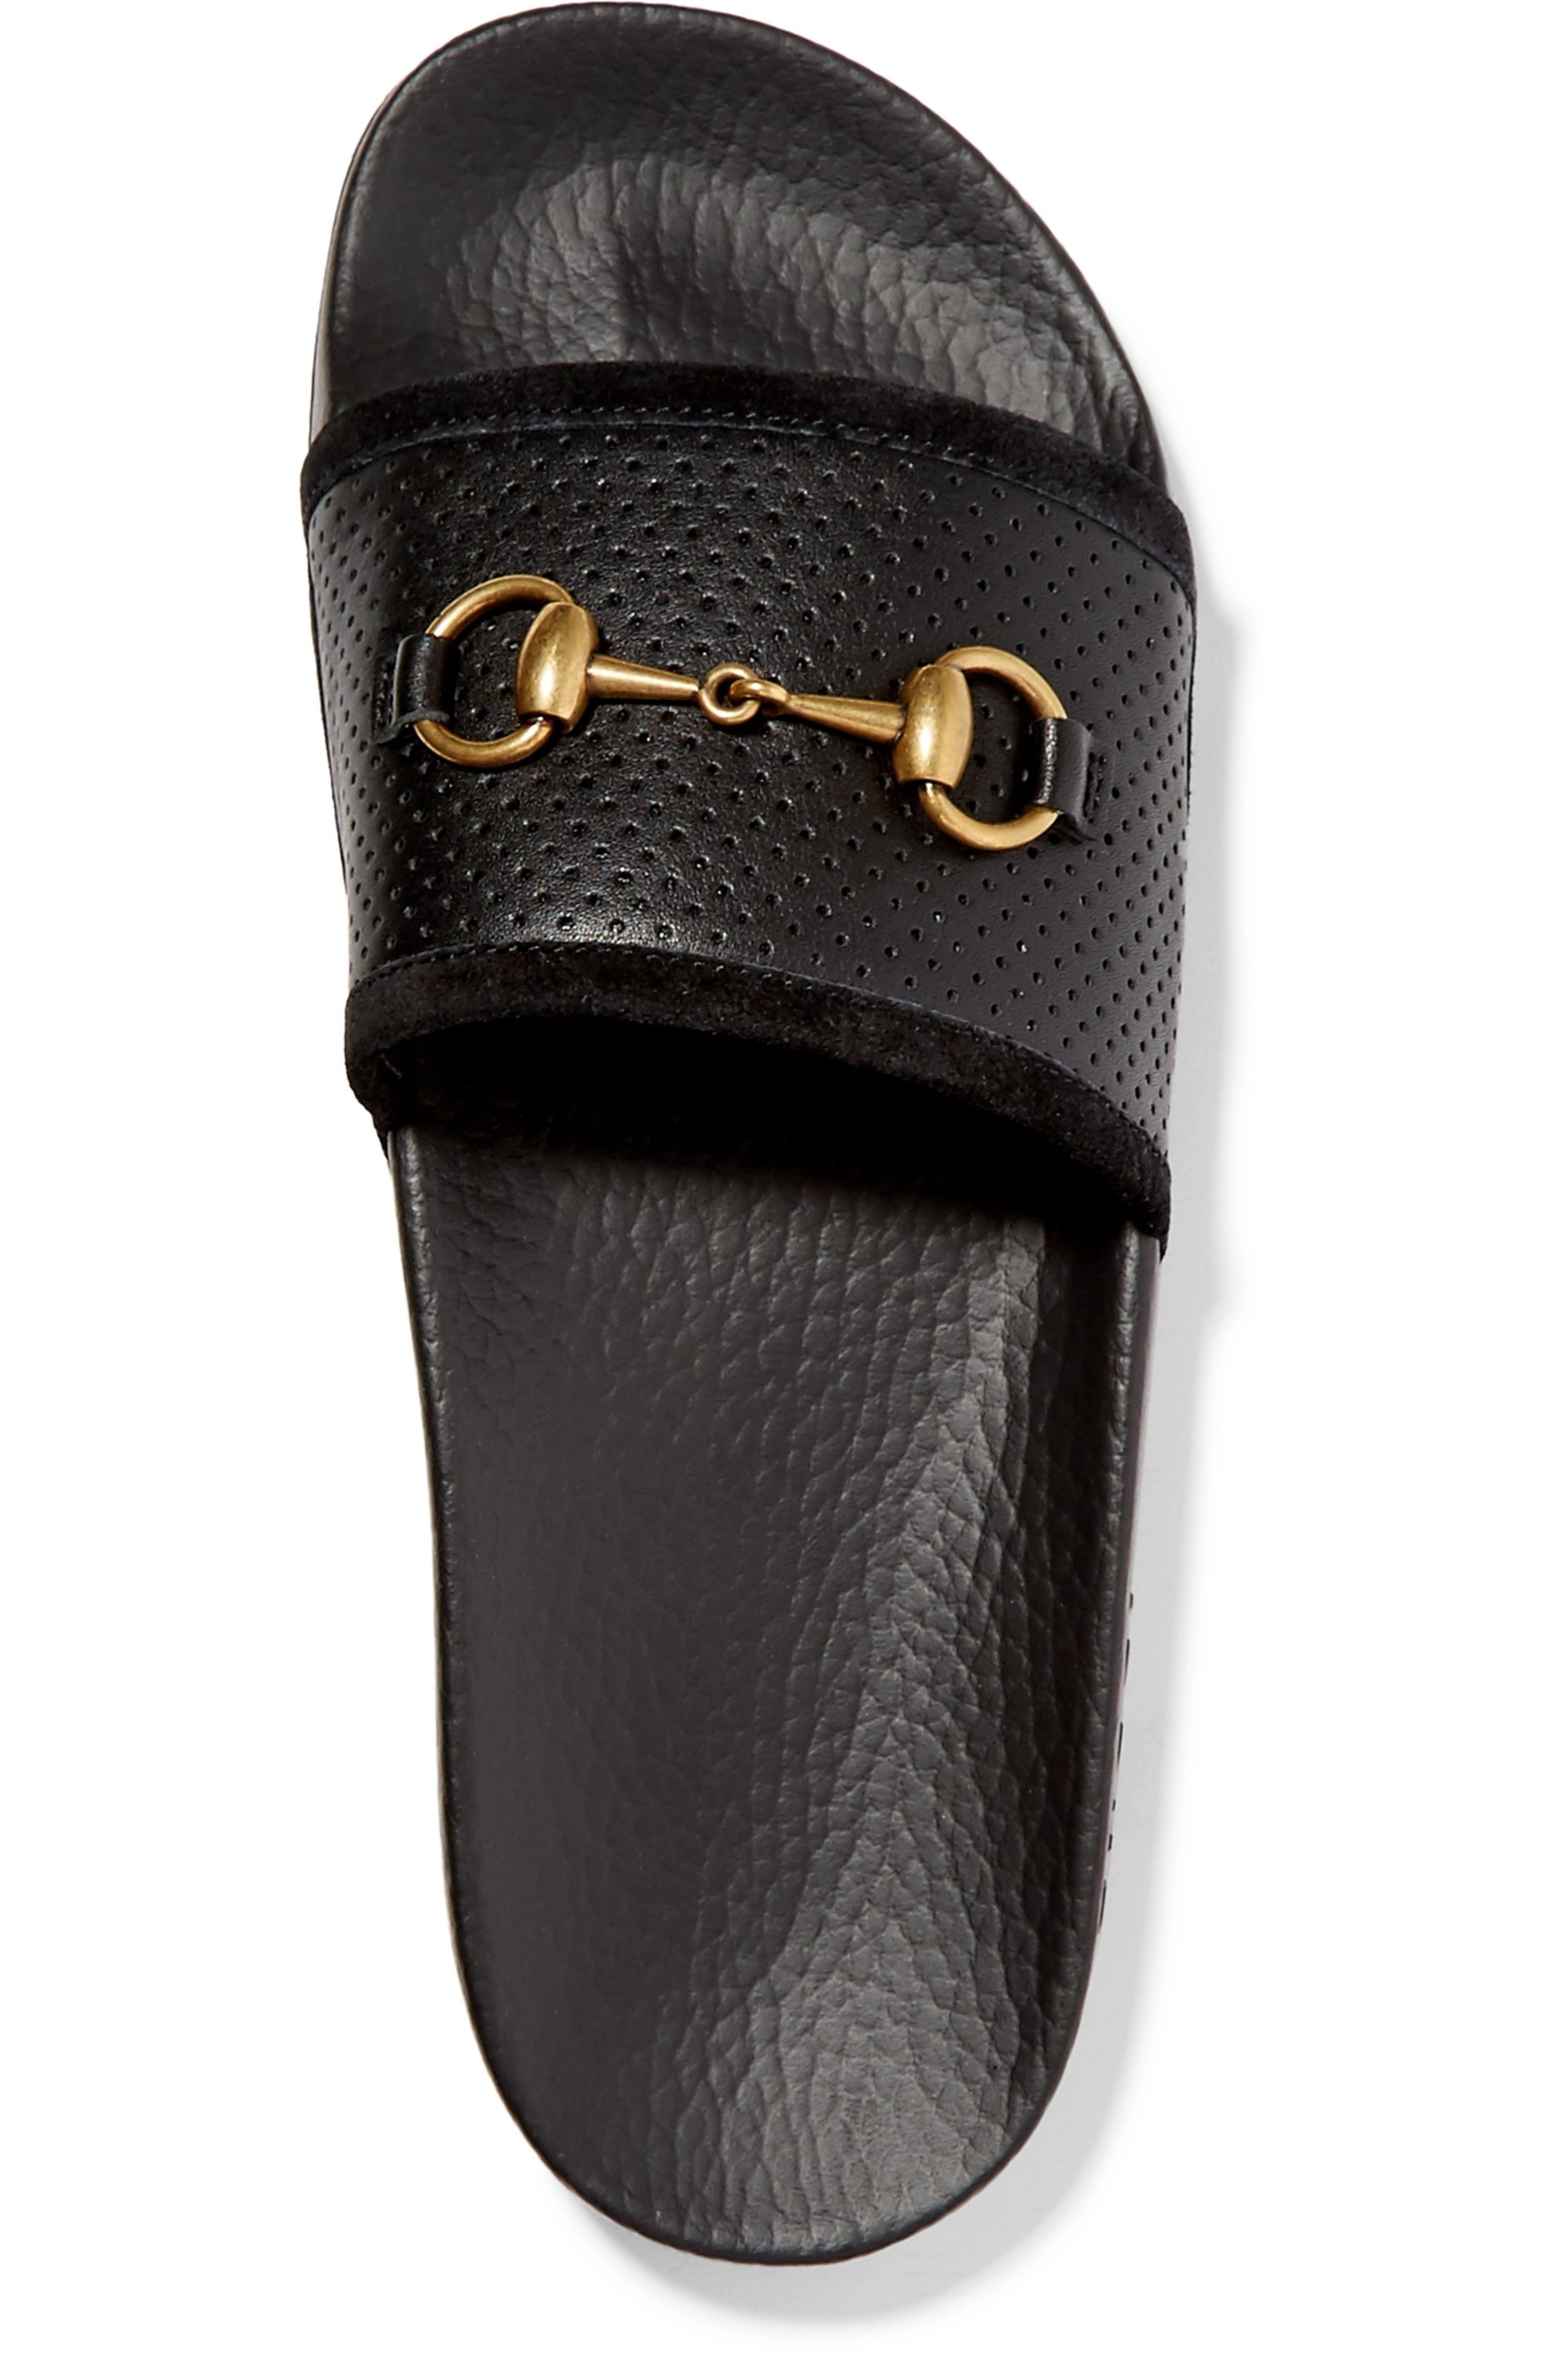 Gucci Horsebit-detailed perforated rubber slides